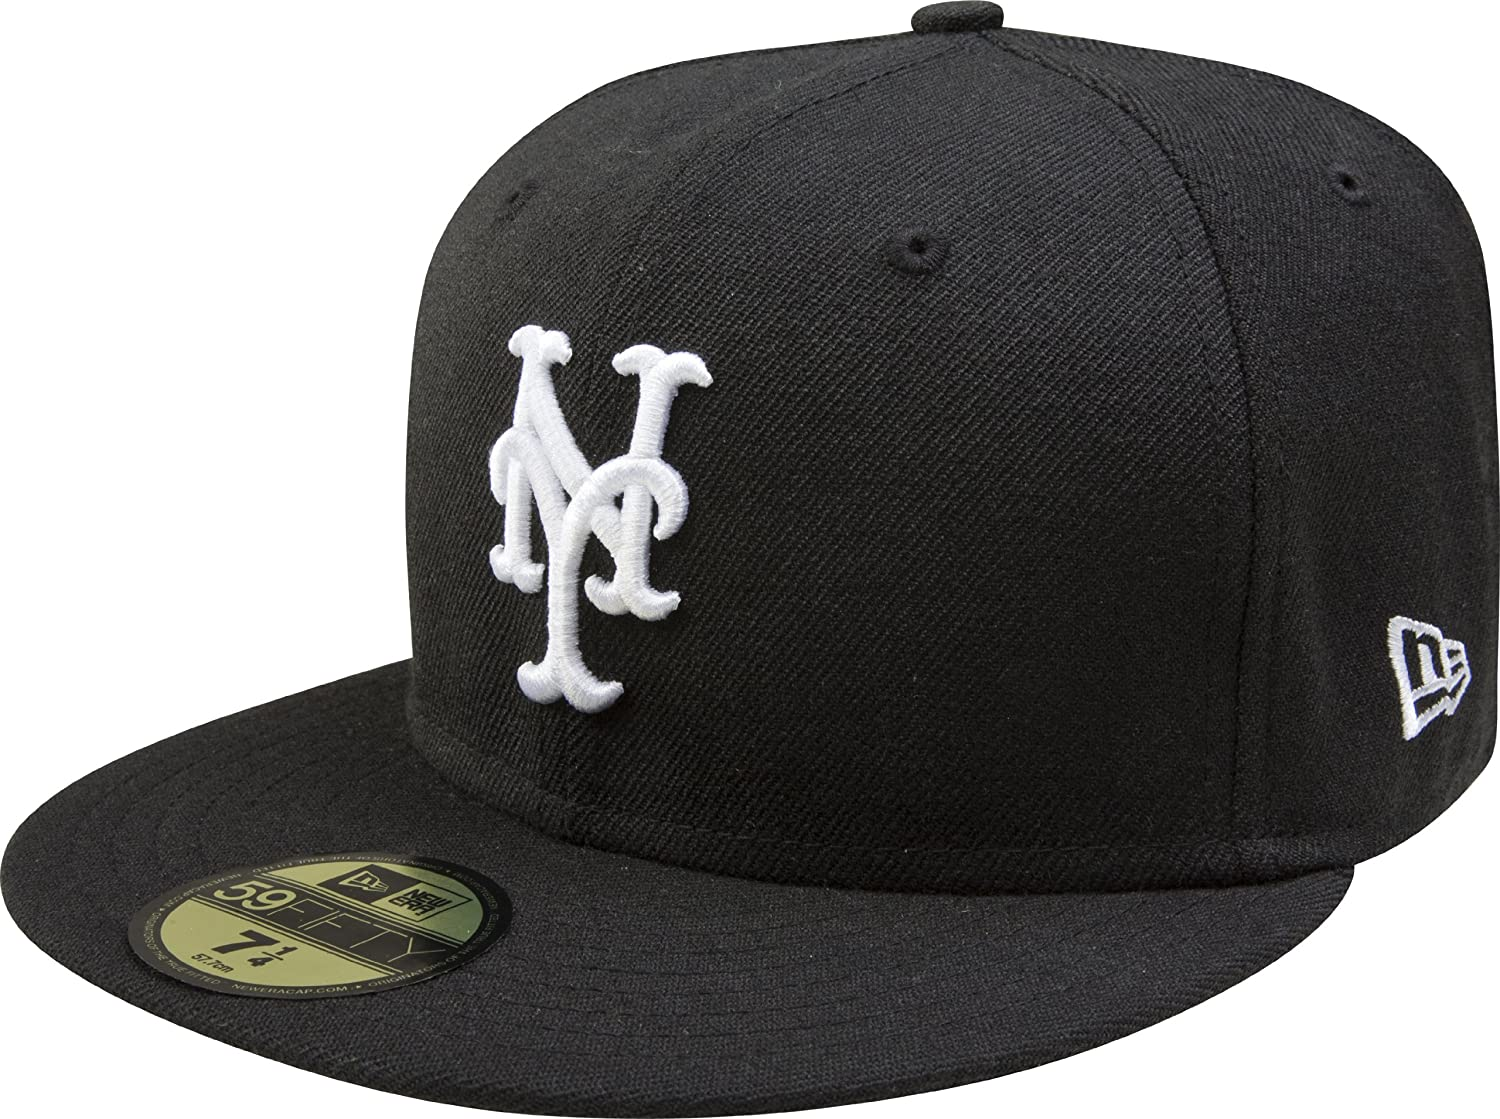 MLB New York Mets Seattle Mall Black with Cap Fitted White Luxury goods 59FIFTY